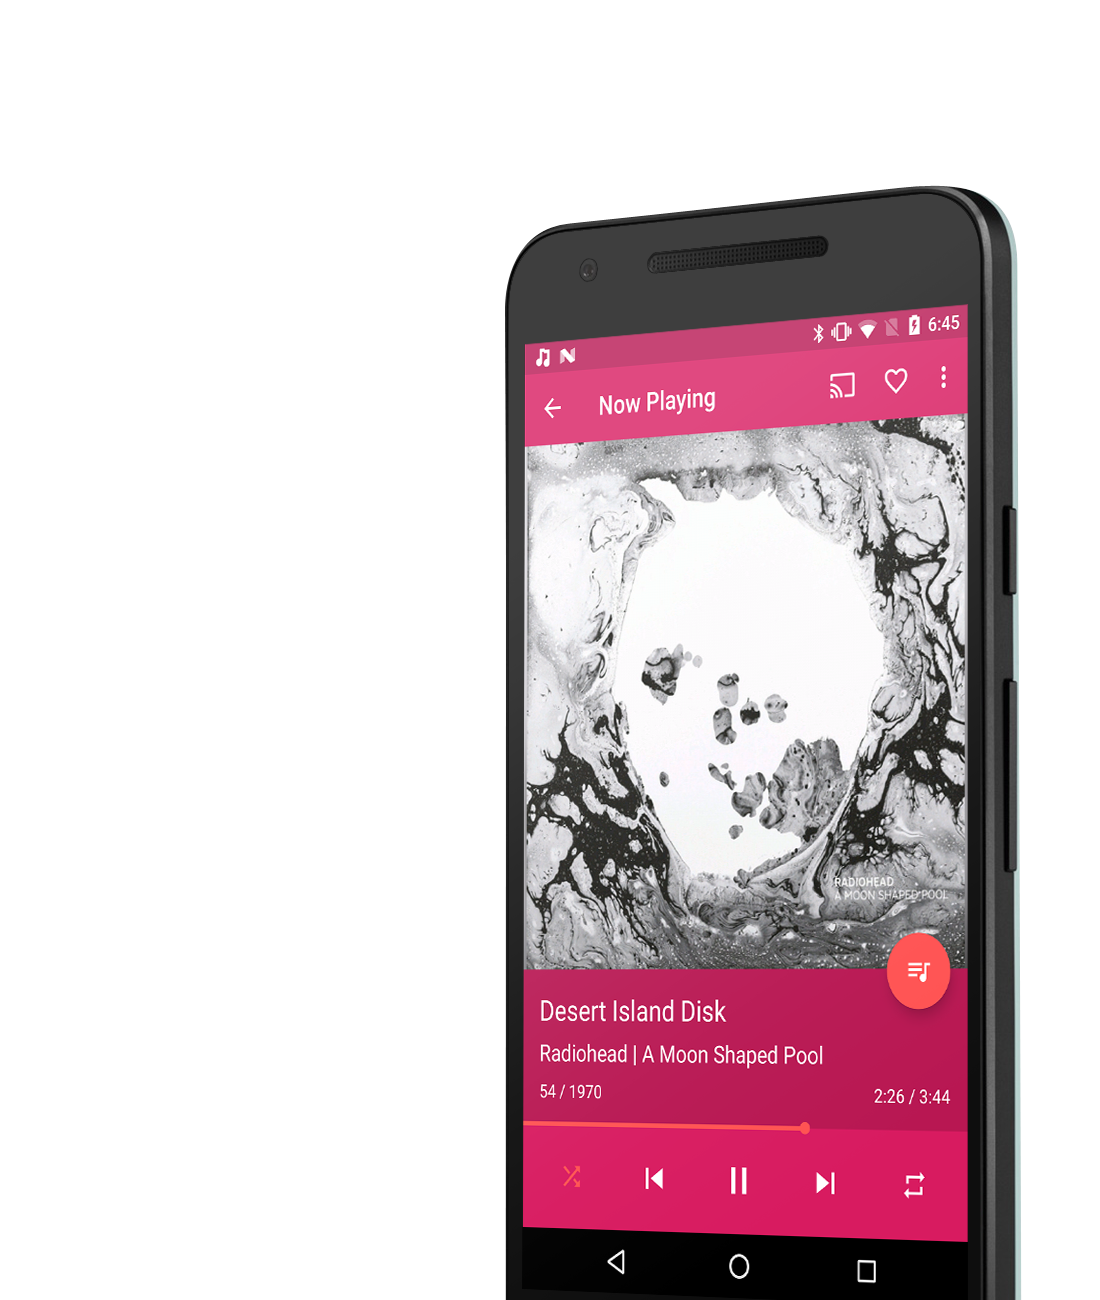 smart shuffle music app android